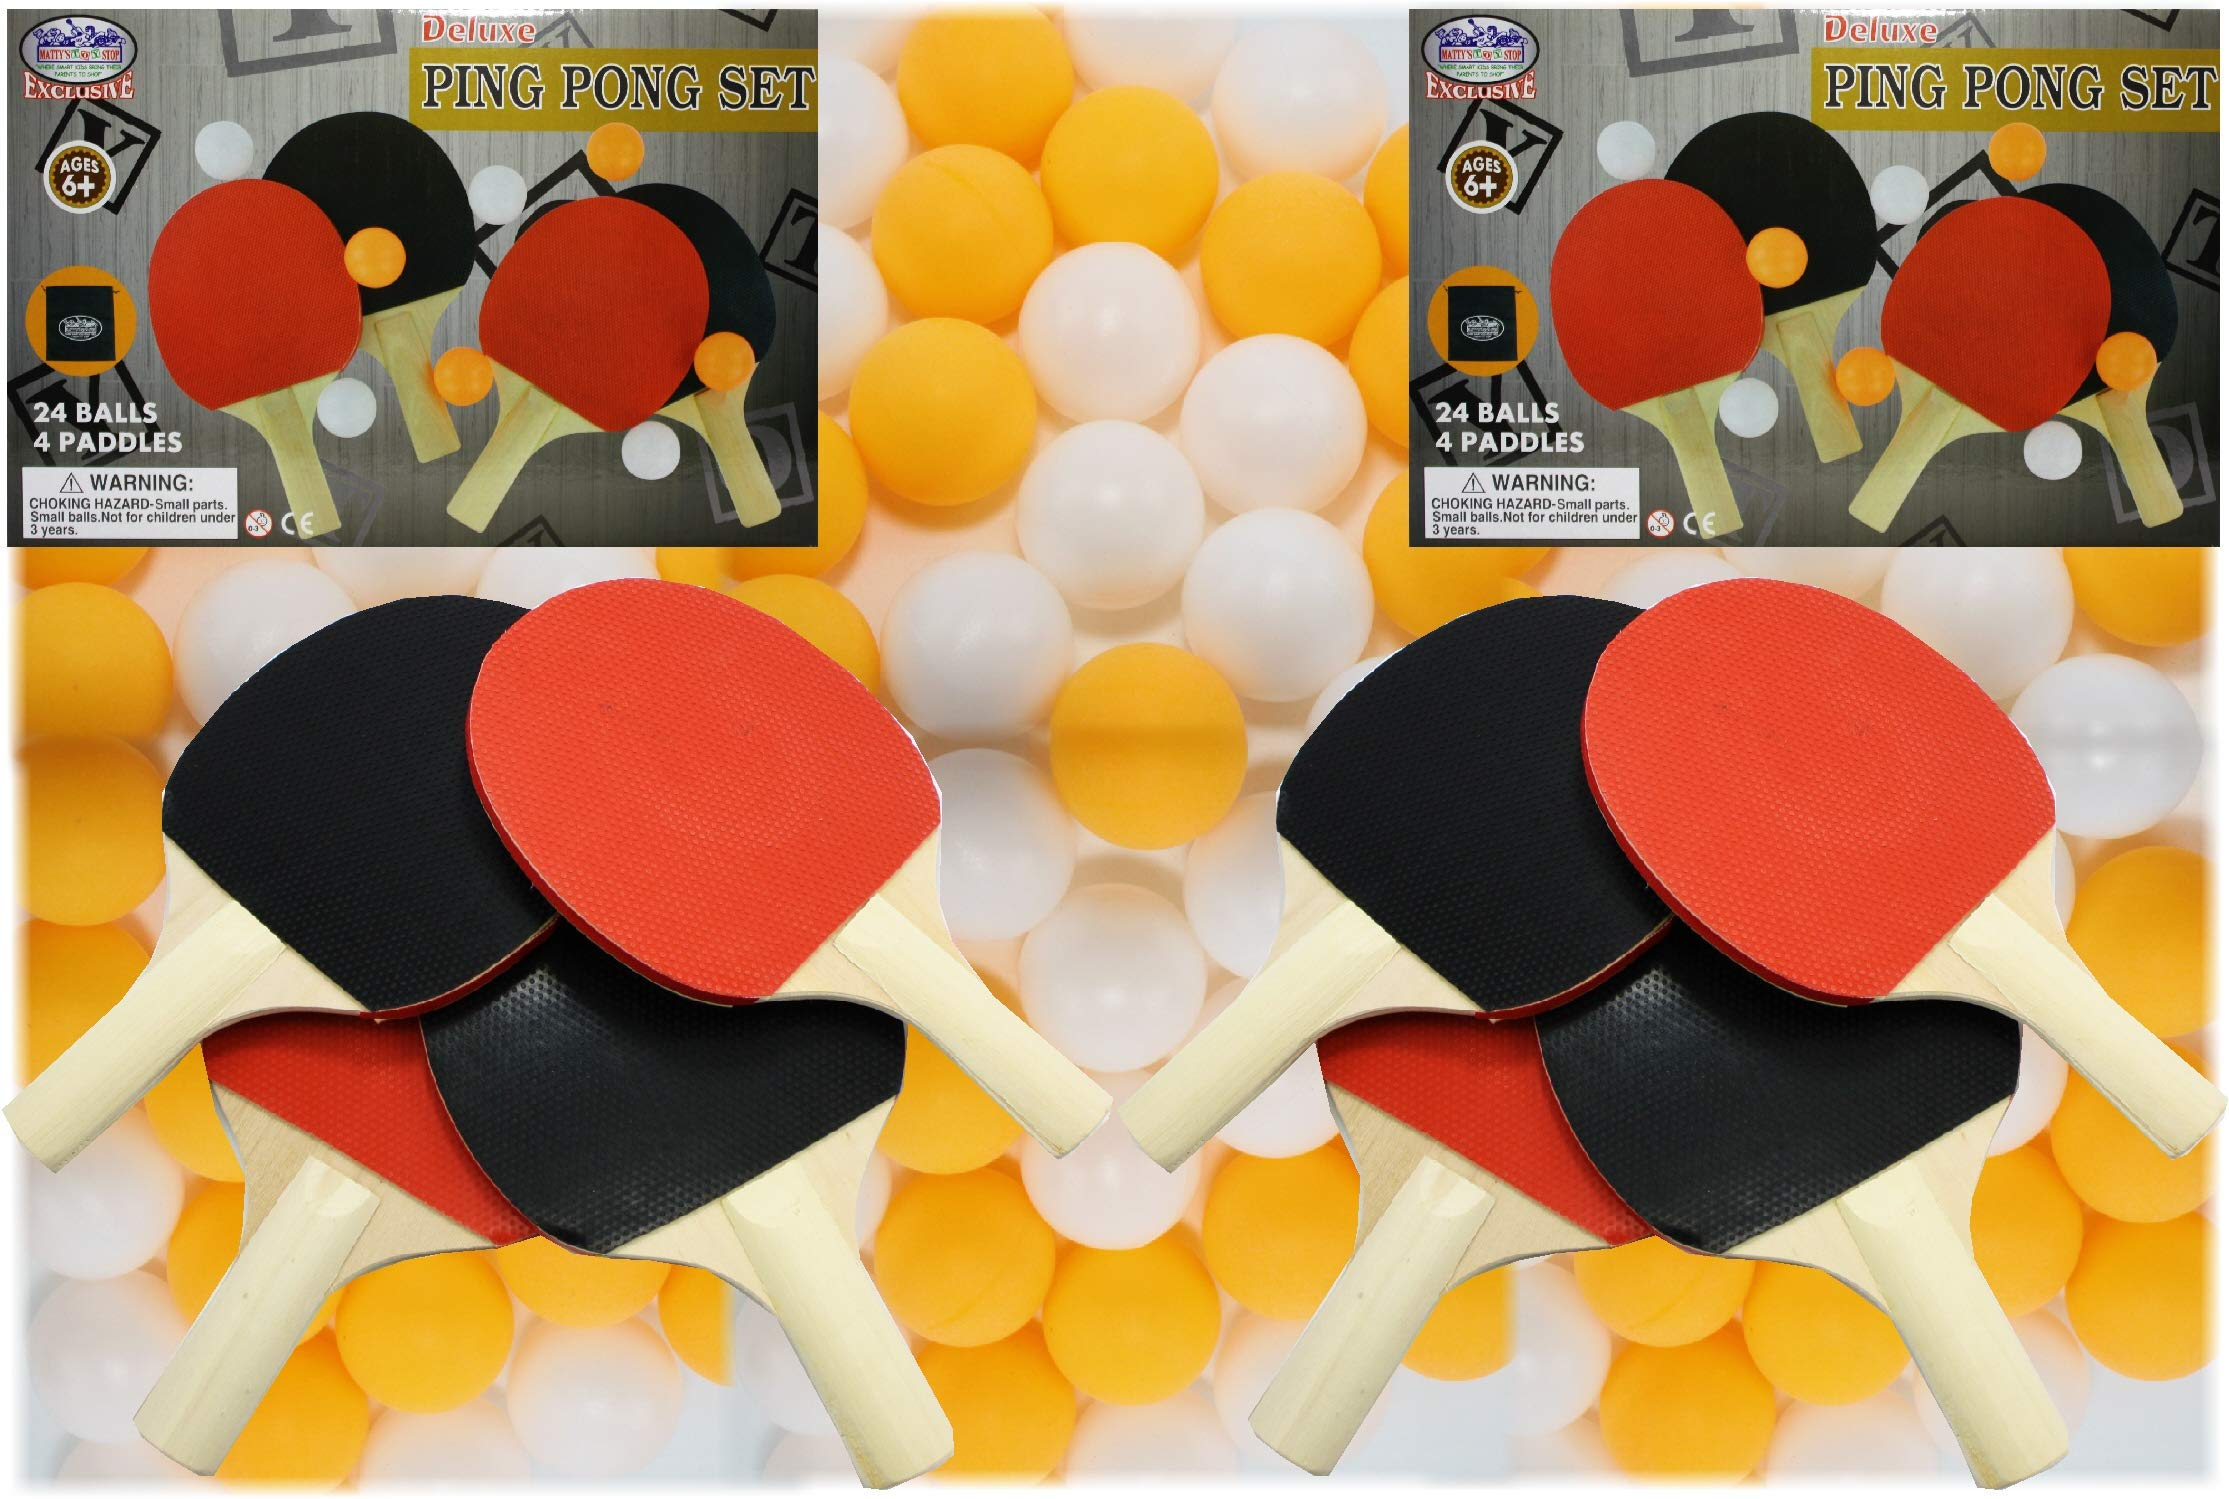 Matty's Toy Stop Deluxe Table Tennis (Ping Pong) Refill Set with 8 Paddles, 48 Balls (24 Orange & 24 White) & 2 Storage Bags by Matty's Toy Stop